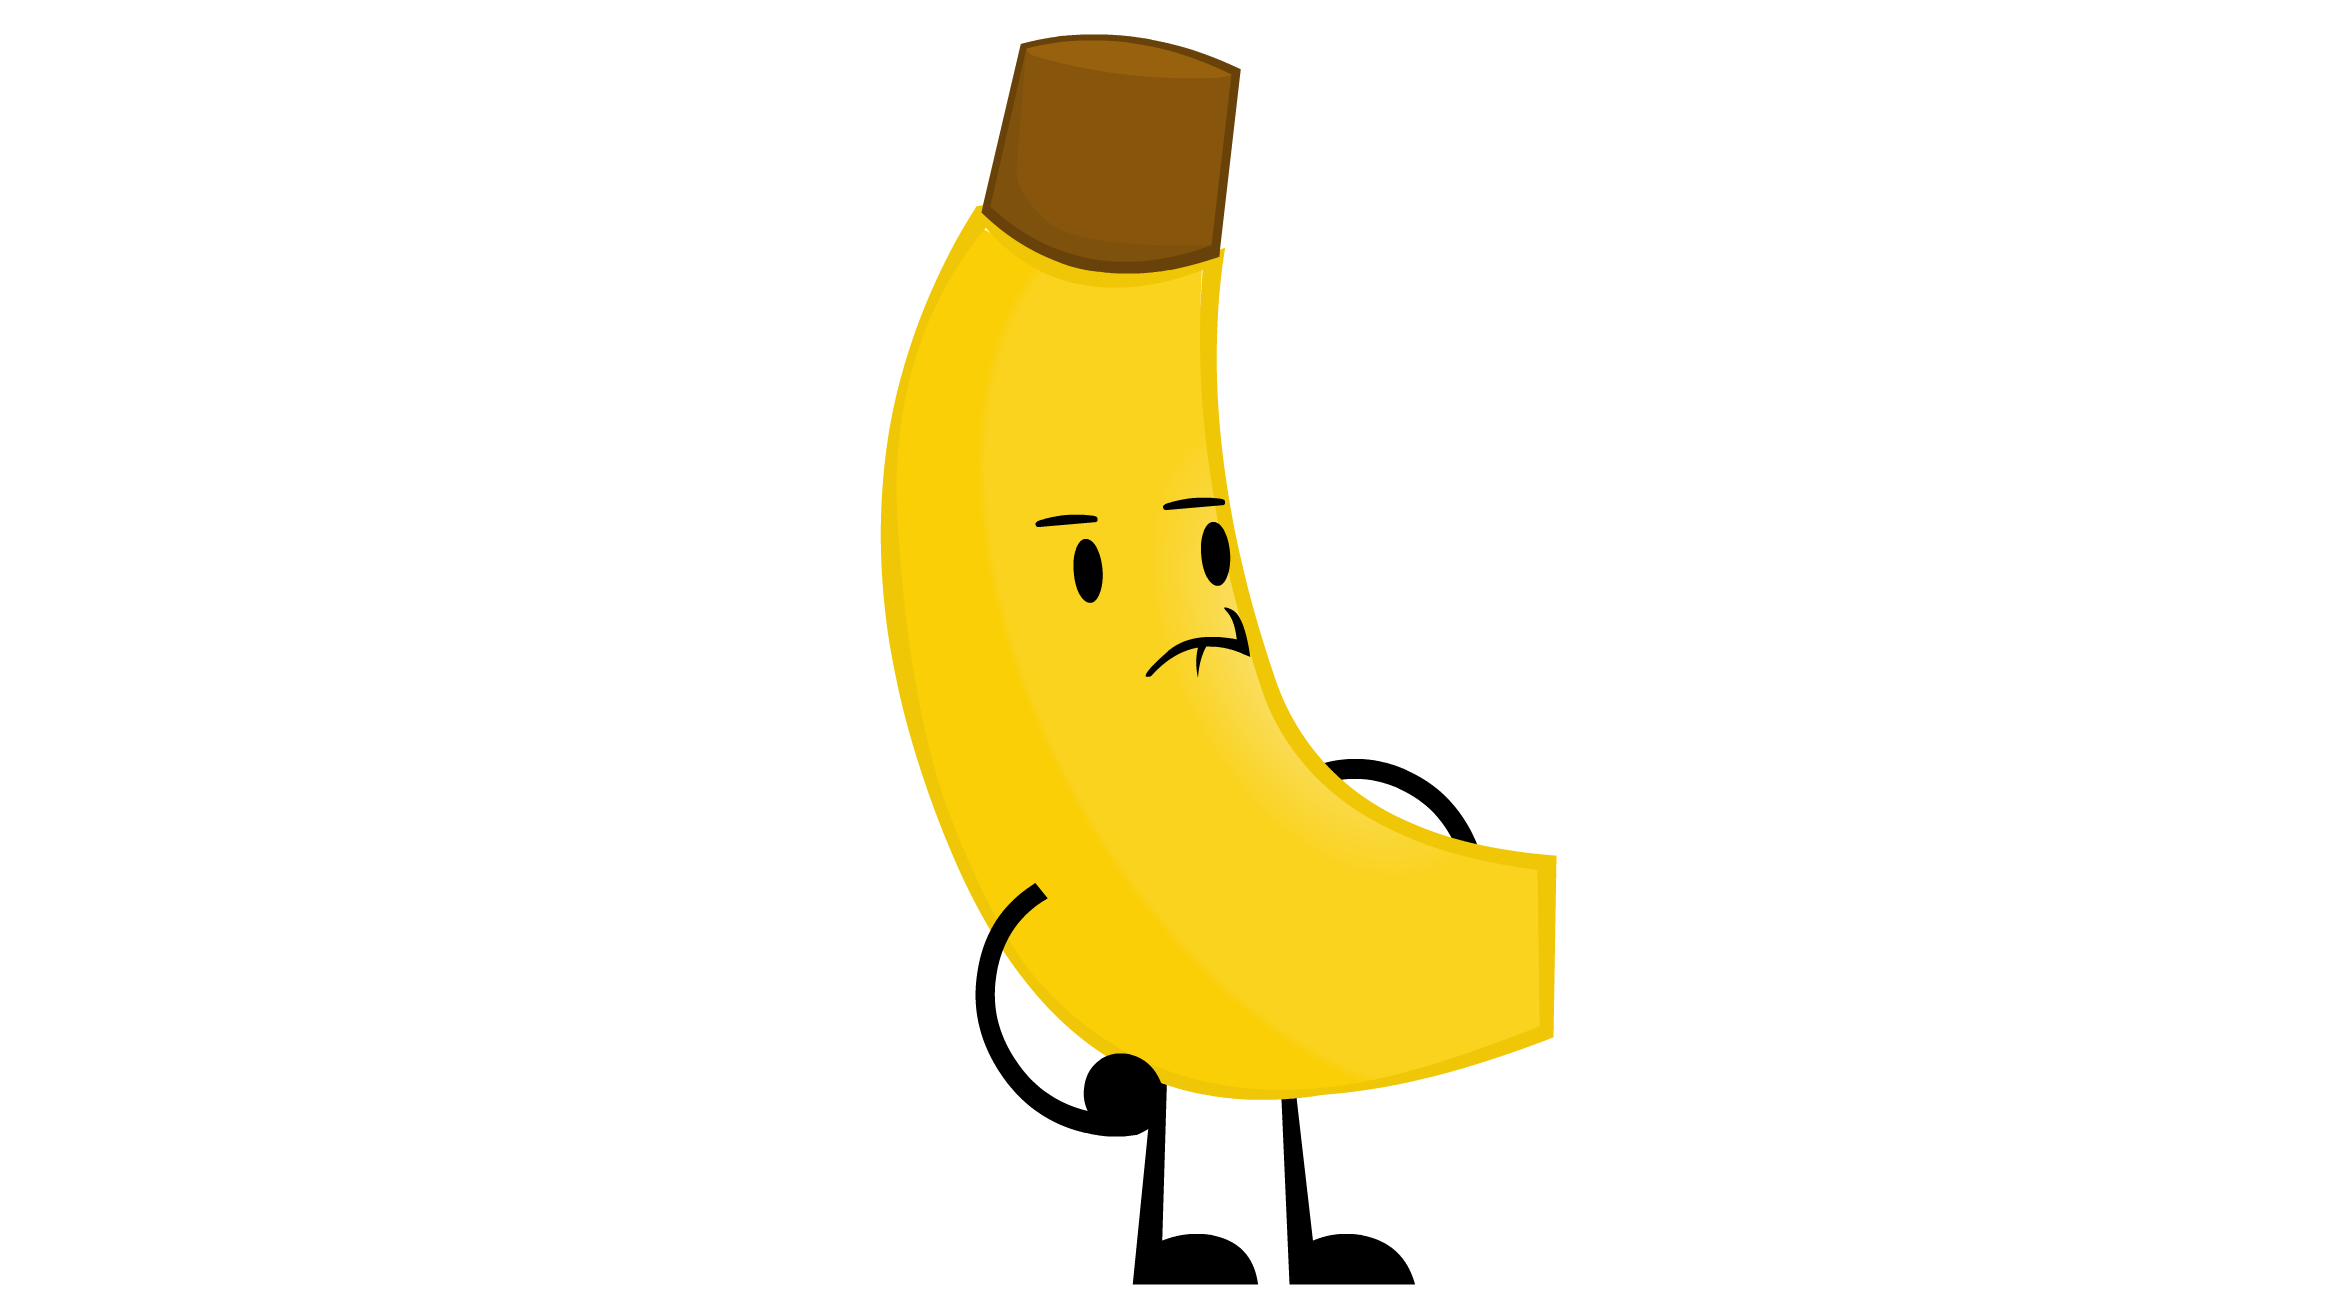 Clipart banana 6 banana. Official super object battle